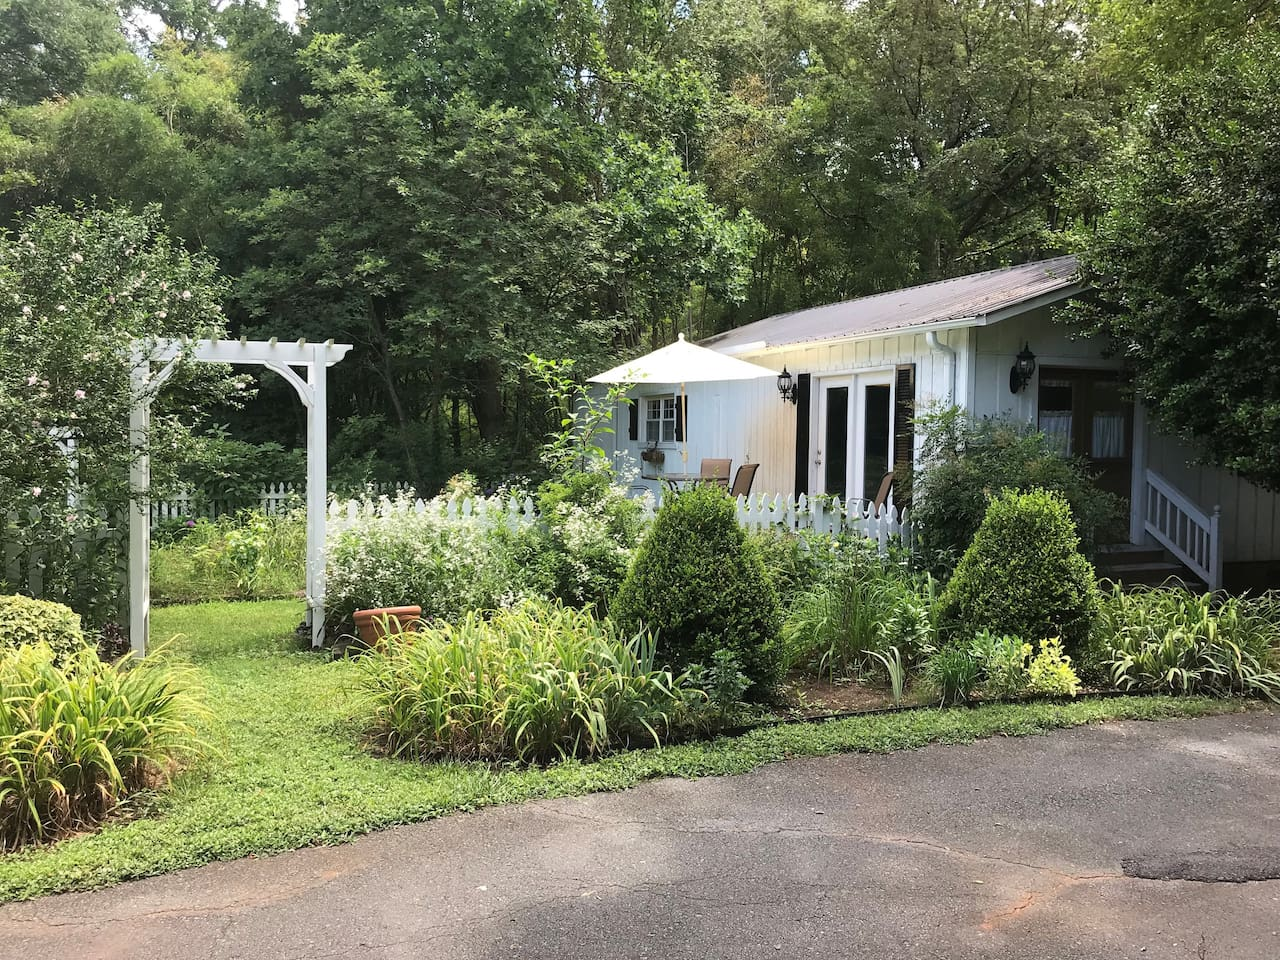 Quaint beautiful private Cottage with lush gardens and your own private deck for reading and relaxing